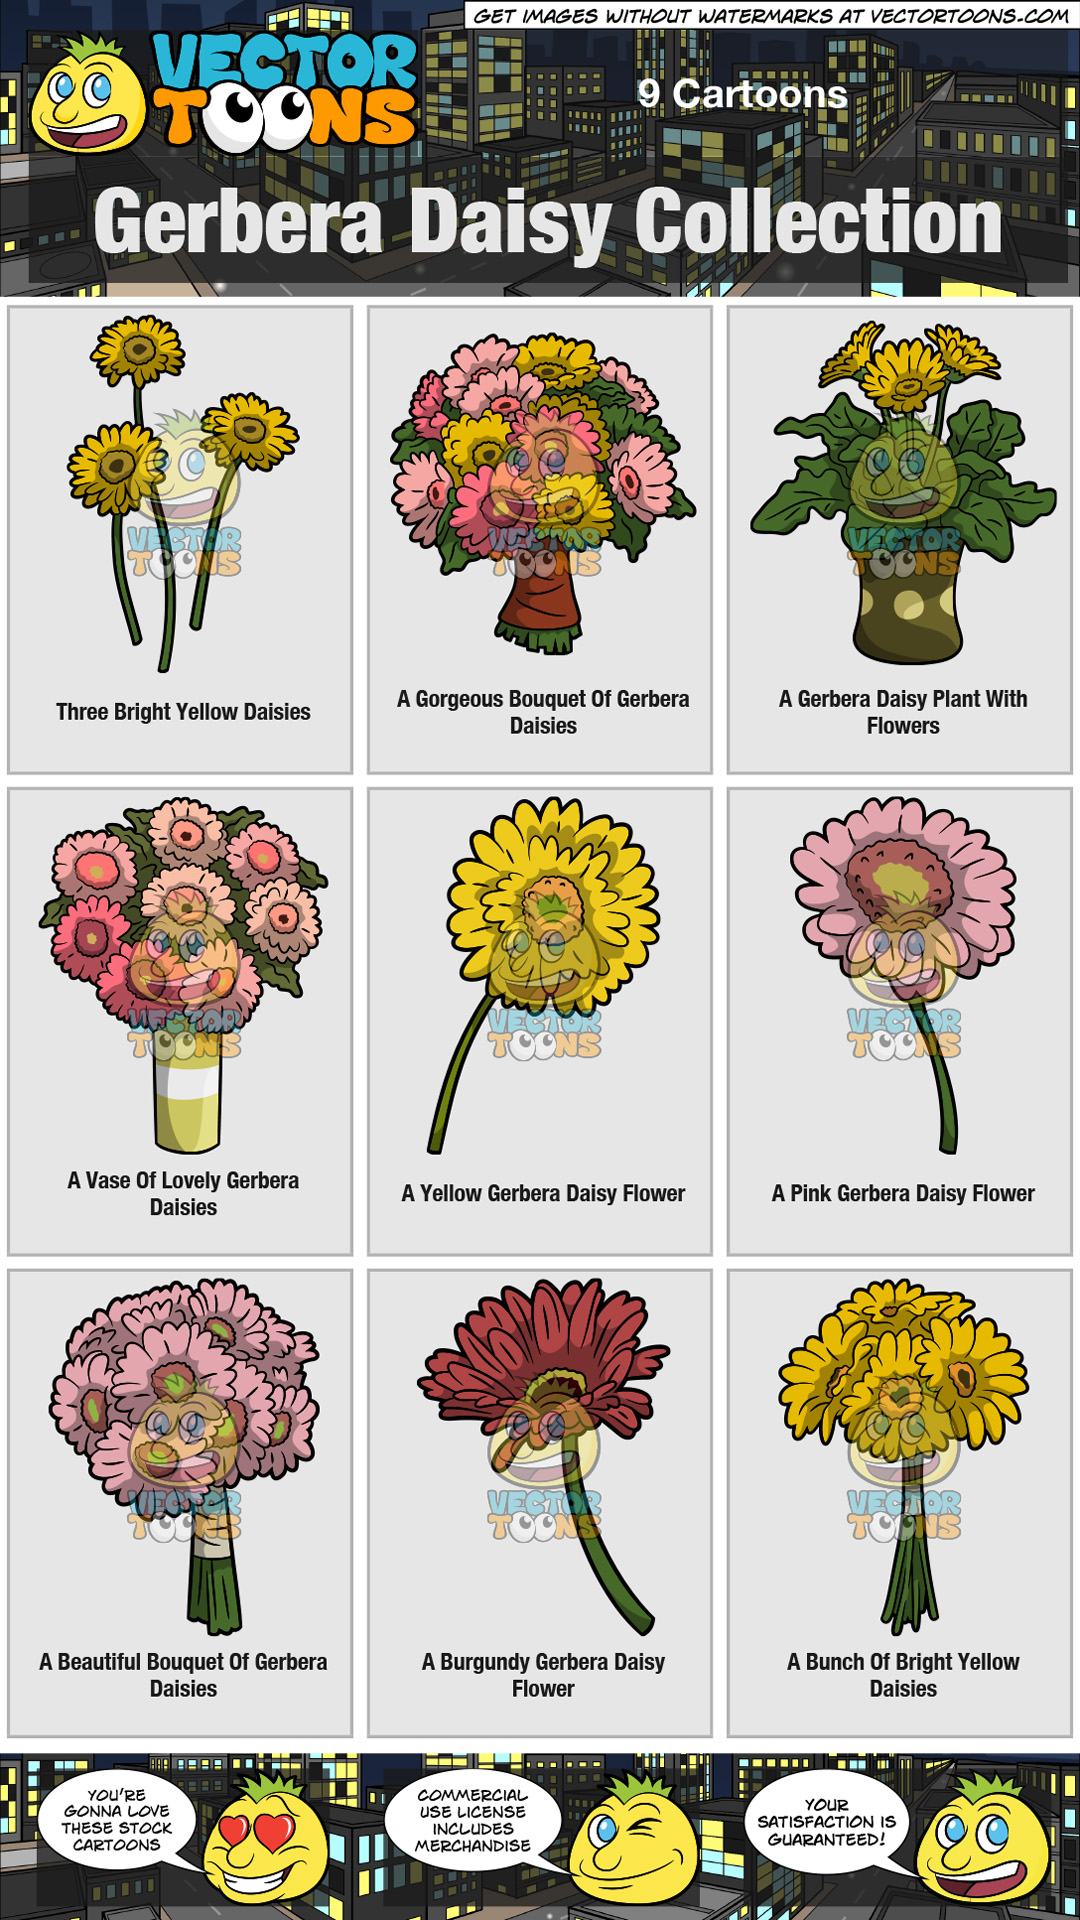 Gerbera daisy collection clipart by vector toons gerbera daisy collection thumbnail izmirmasajfo